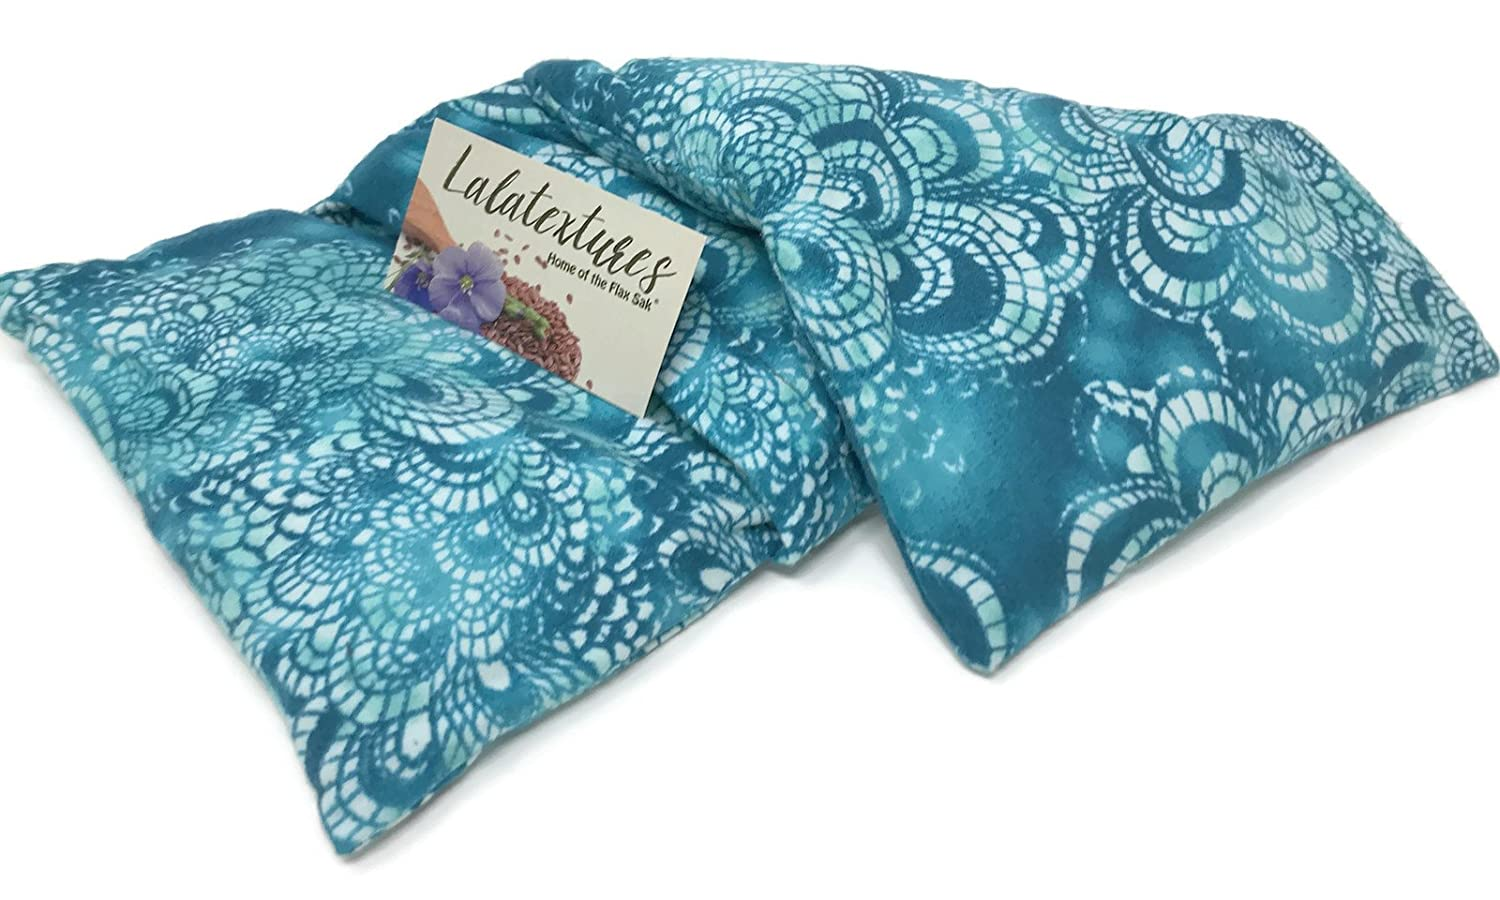 The Flax Sak Unscented Large Microwave Heating Pad With Washable Cover. Hot/Cold Pack With Washable Cover, Ocean Shell.